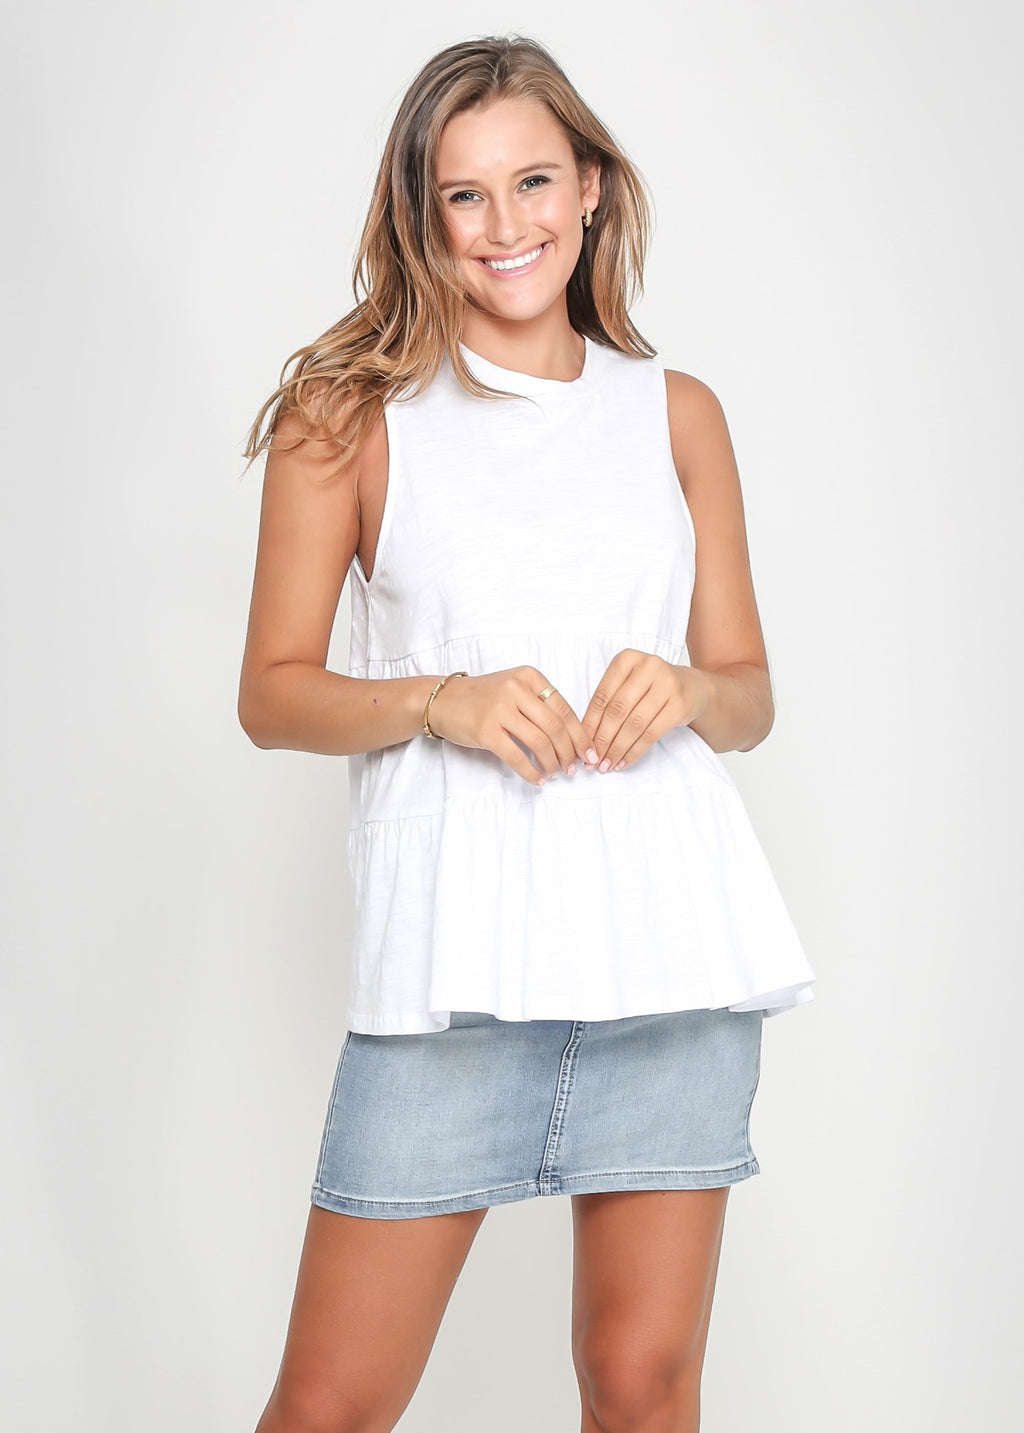 CHELSY TOP - WHITE - LAST STOCK